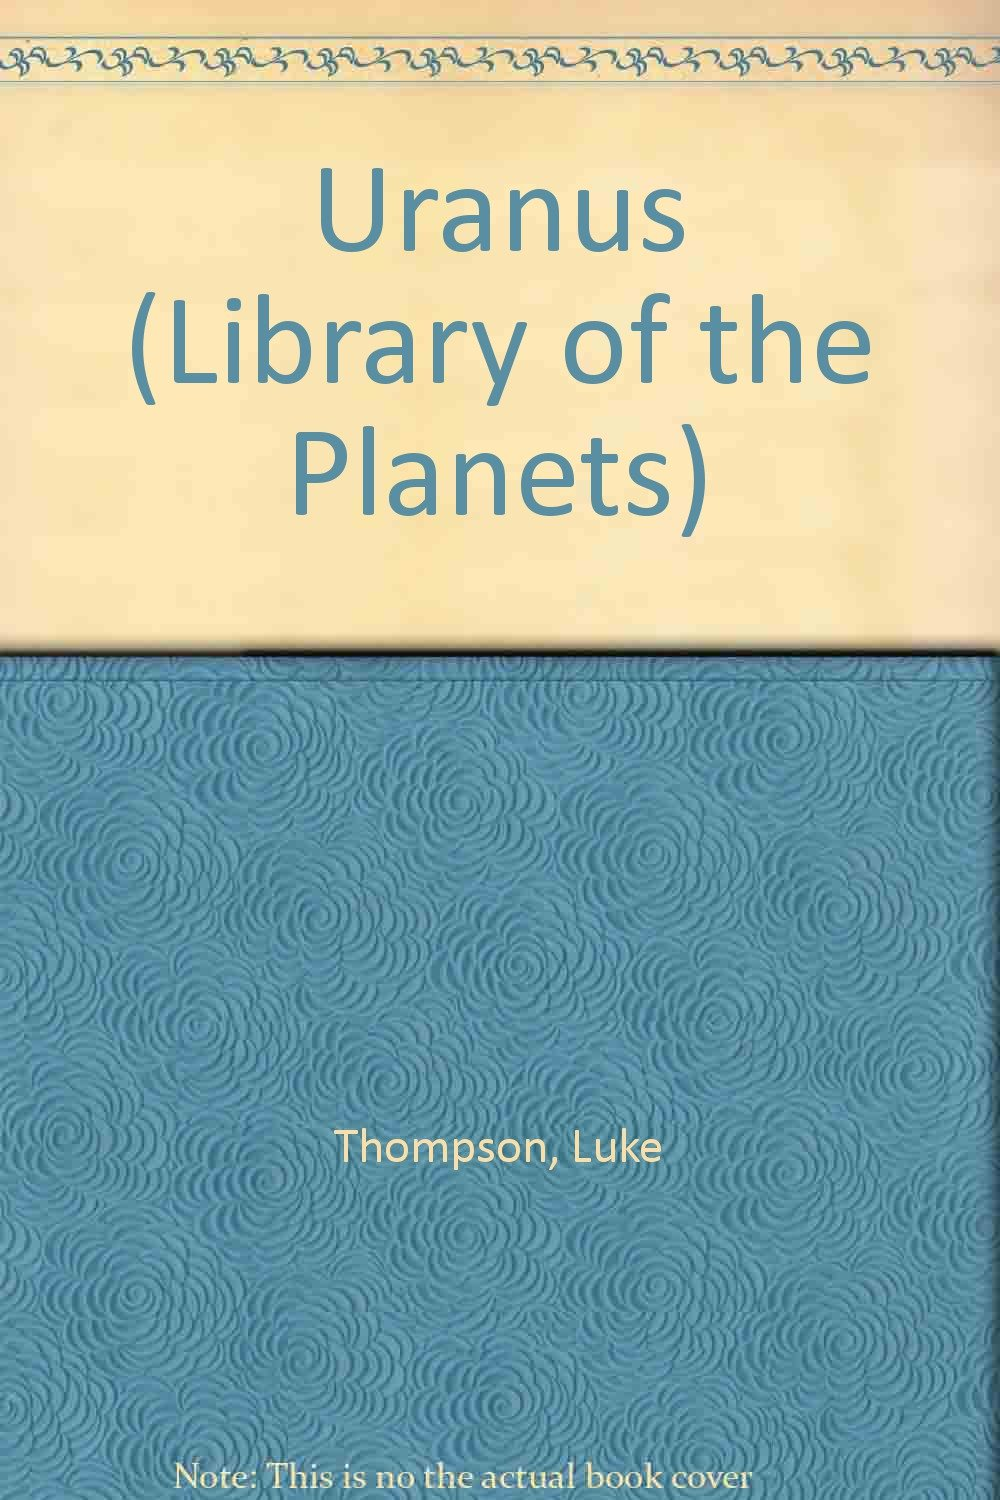 Uranus (The Library of the Planets)